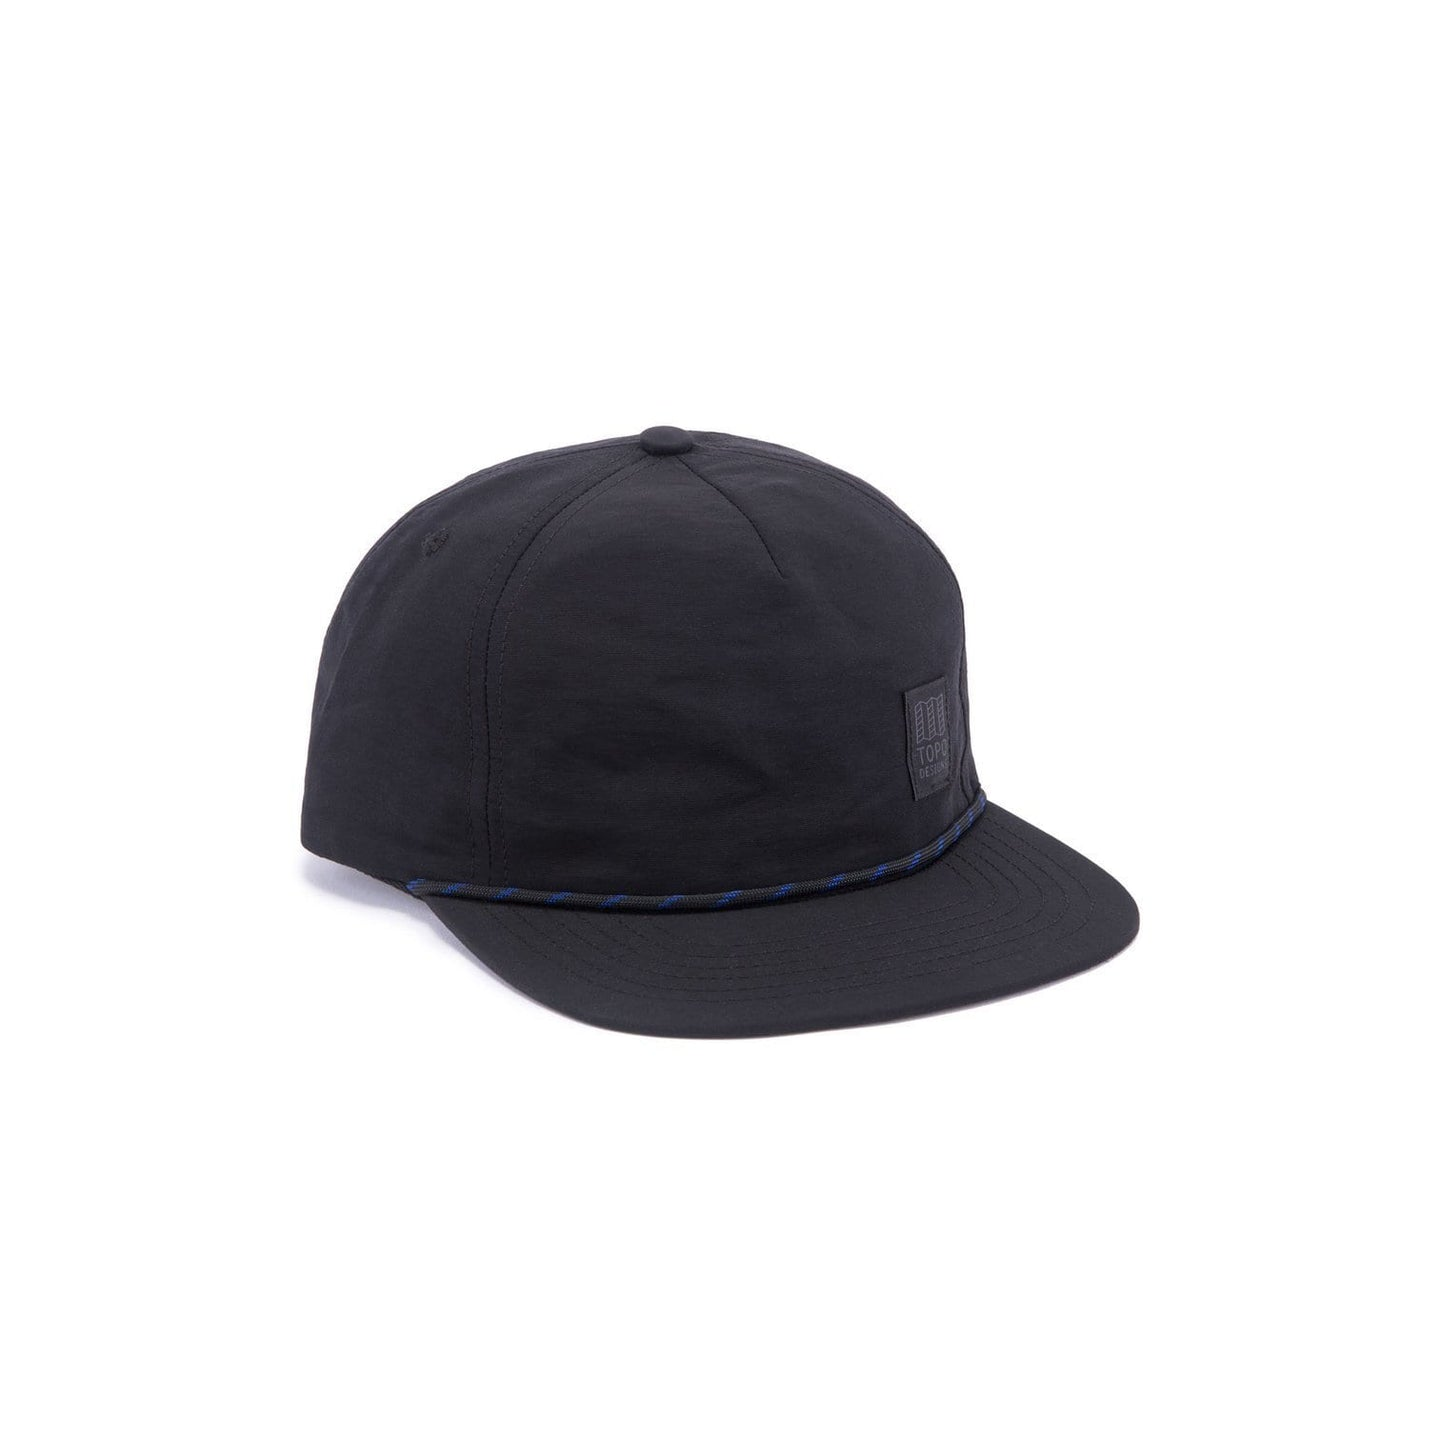 Topo Designs Cord Cap / Neighborhood Goods